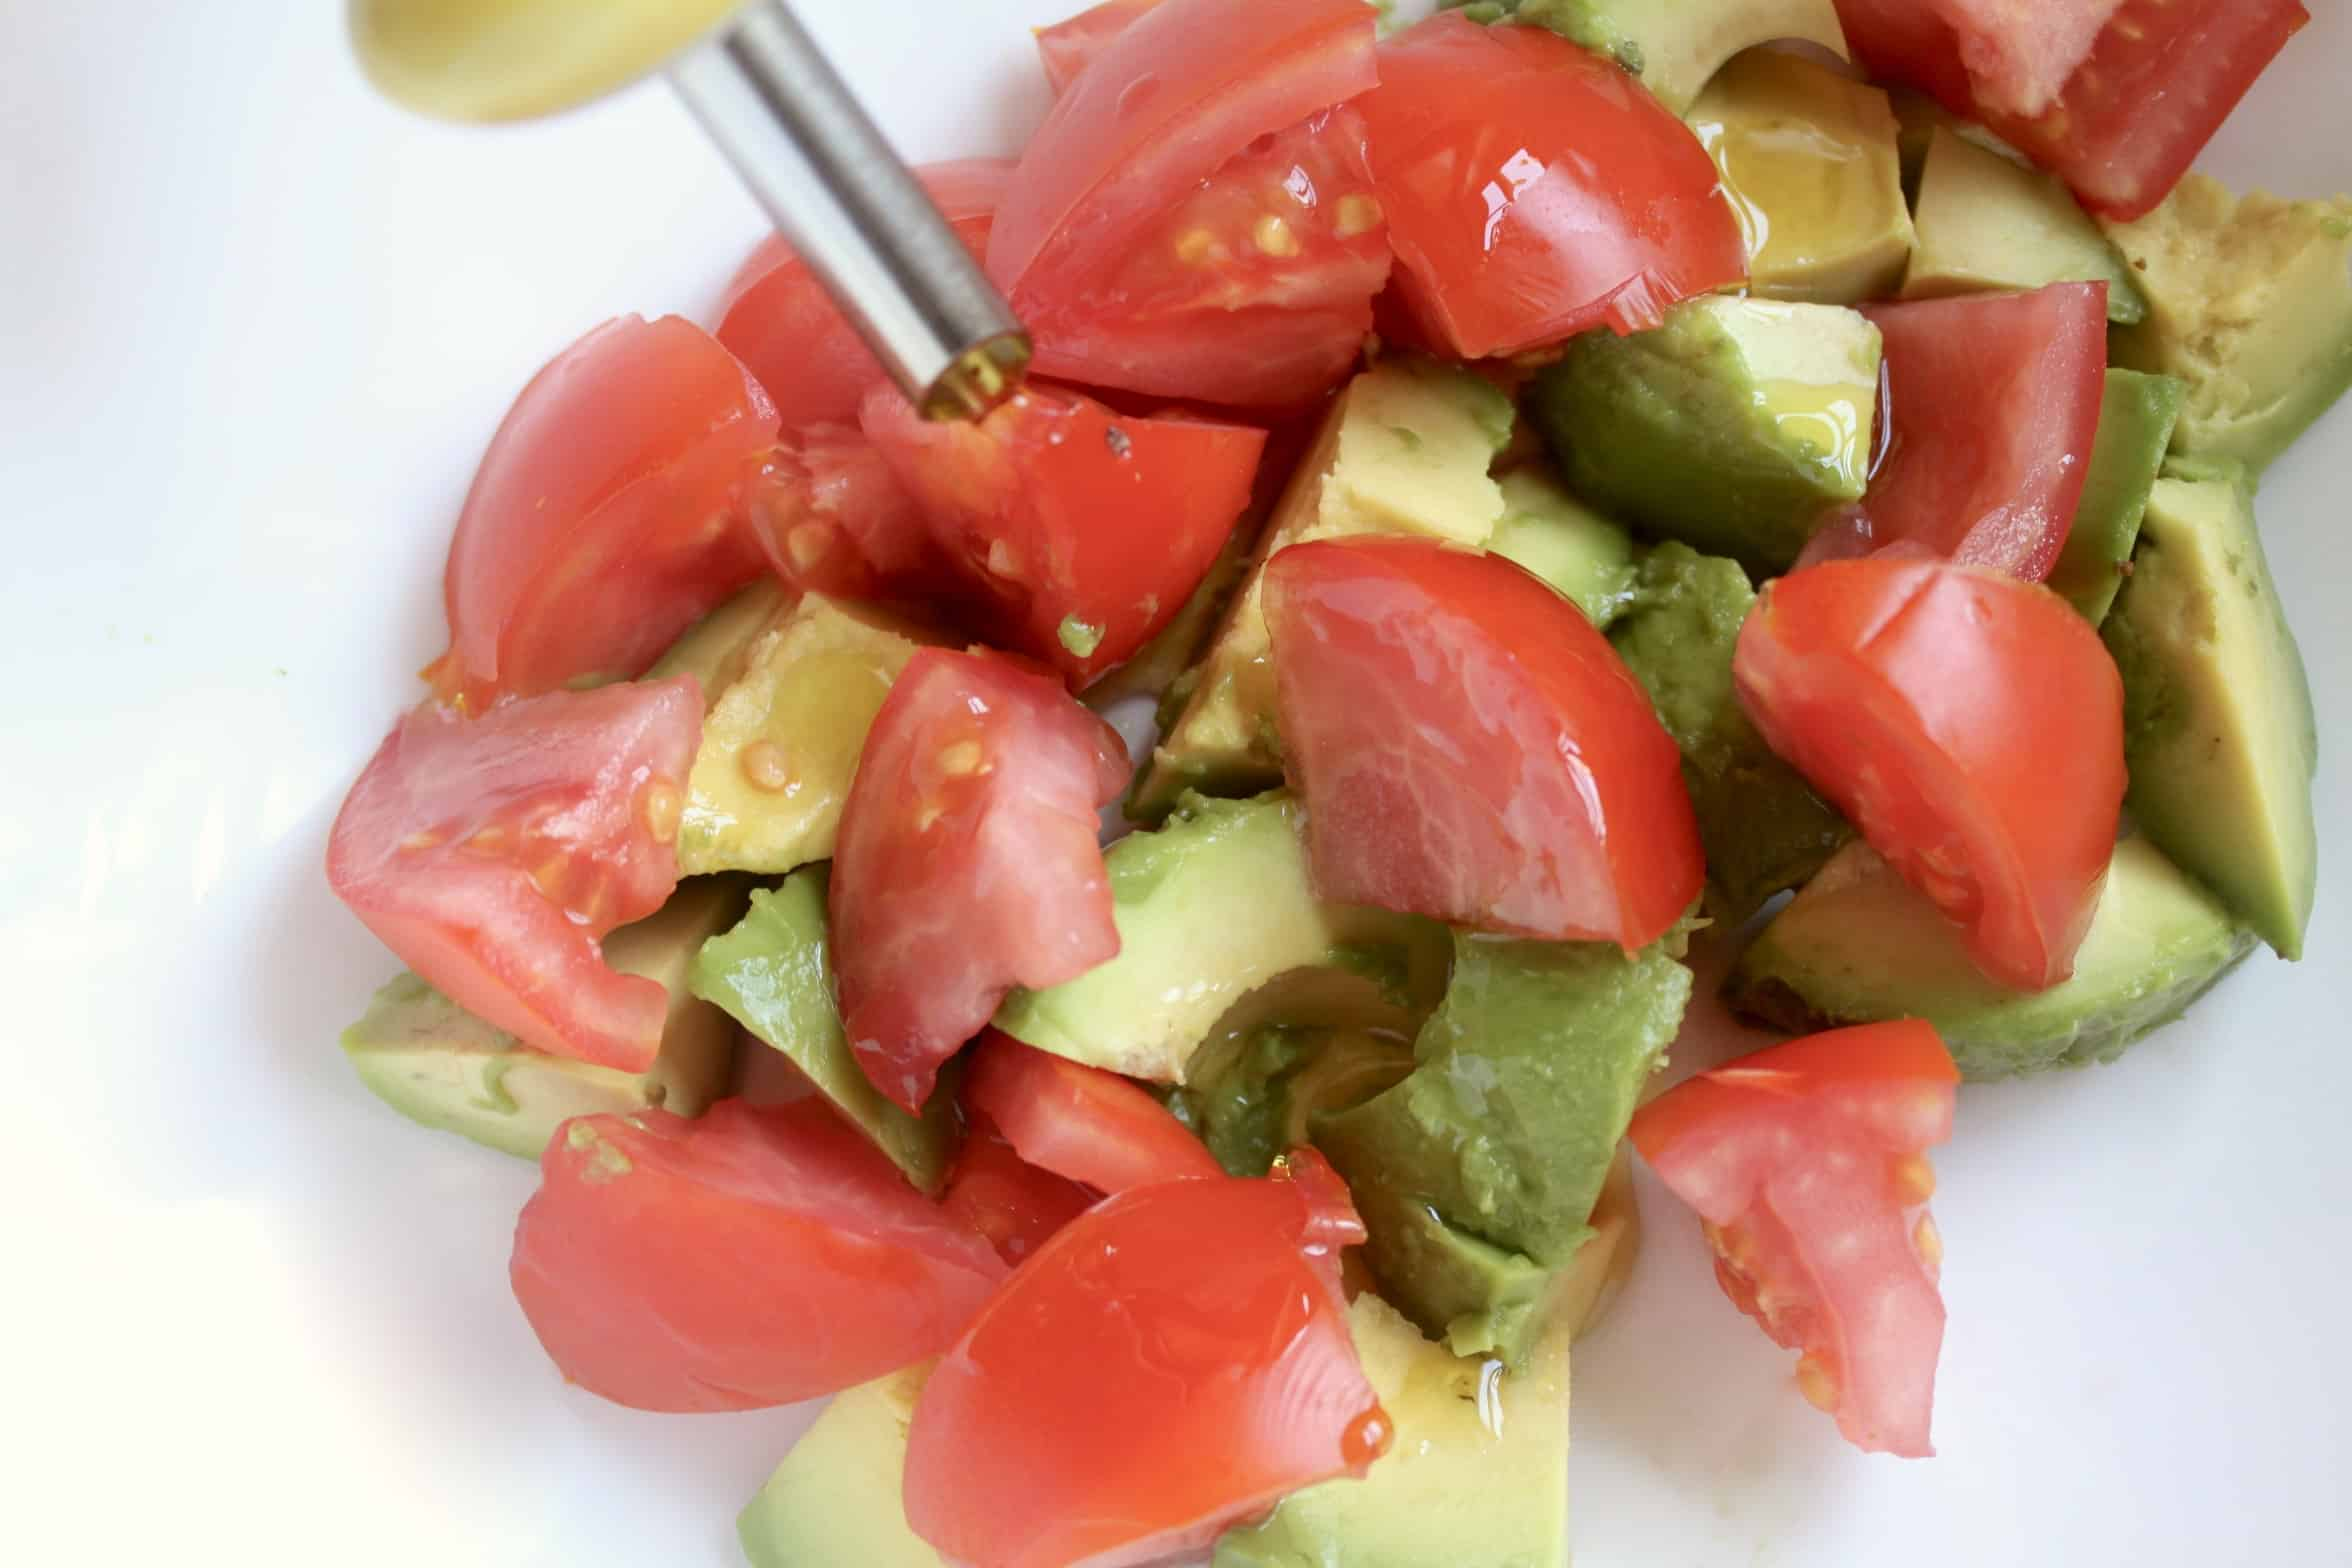 adding olive oil to avocado and tomato salad